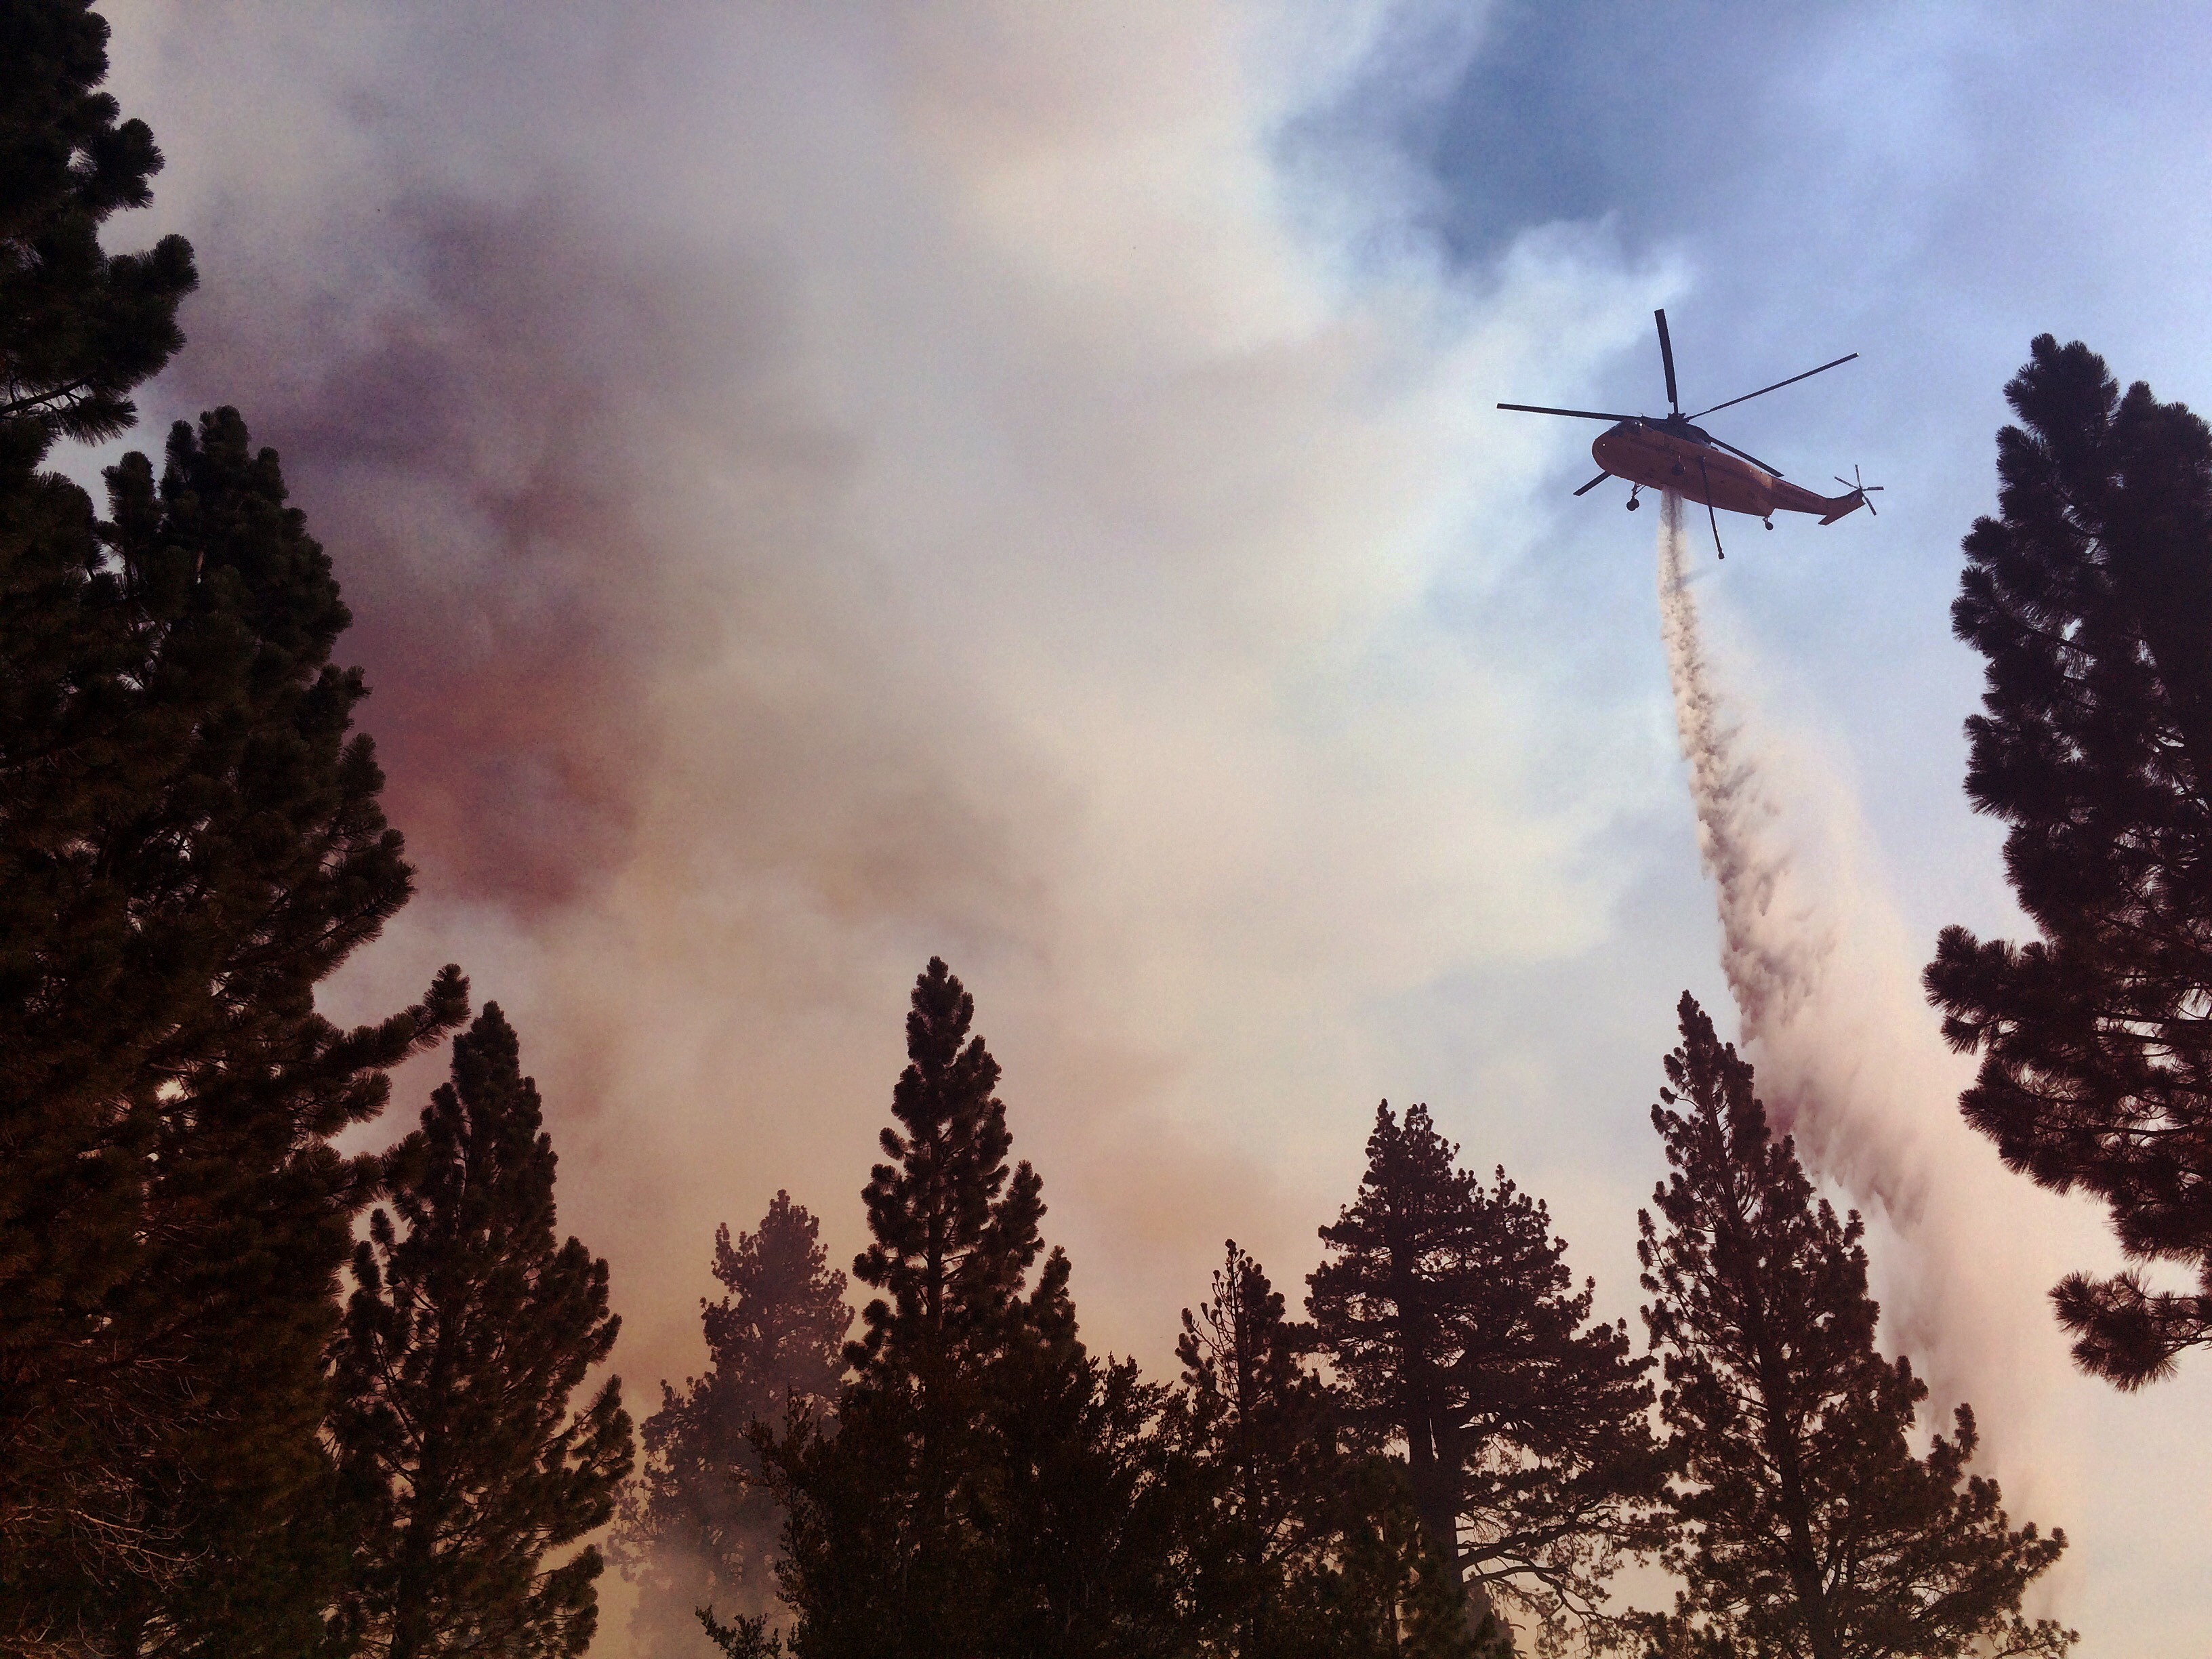 Helicopter fighting wildland fire from the air. Photo taken by ExpertVoice Expert Gregg Boydston.